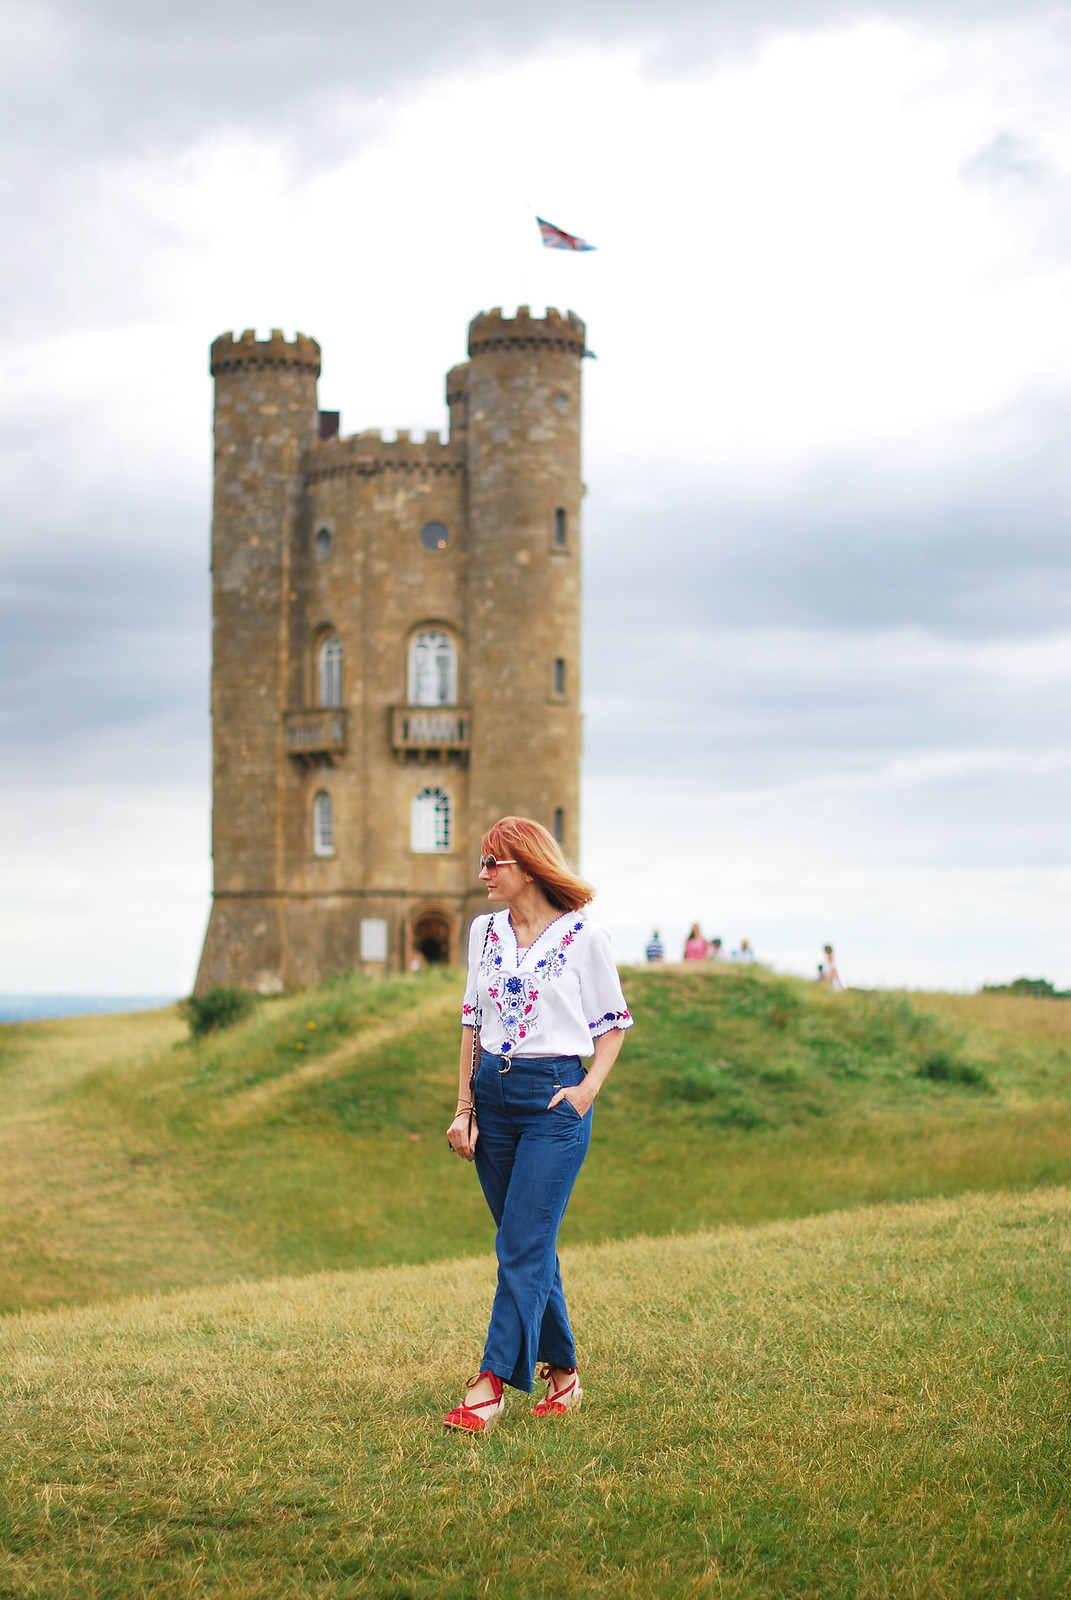 Embroidery and denim: Greek-style embroidered top, wide leg jeans, red lace-up espadrilles   Broadway Tower, The Cotswolds   Not Dressed As Lamb